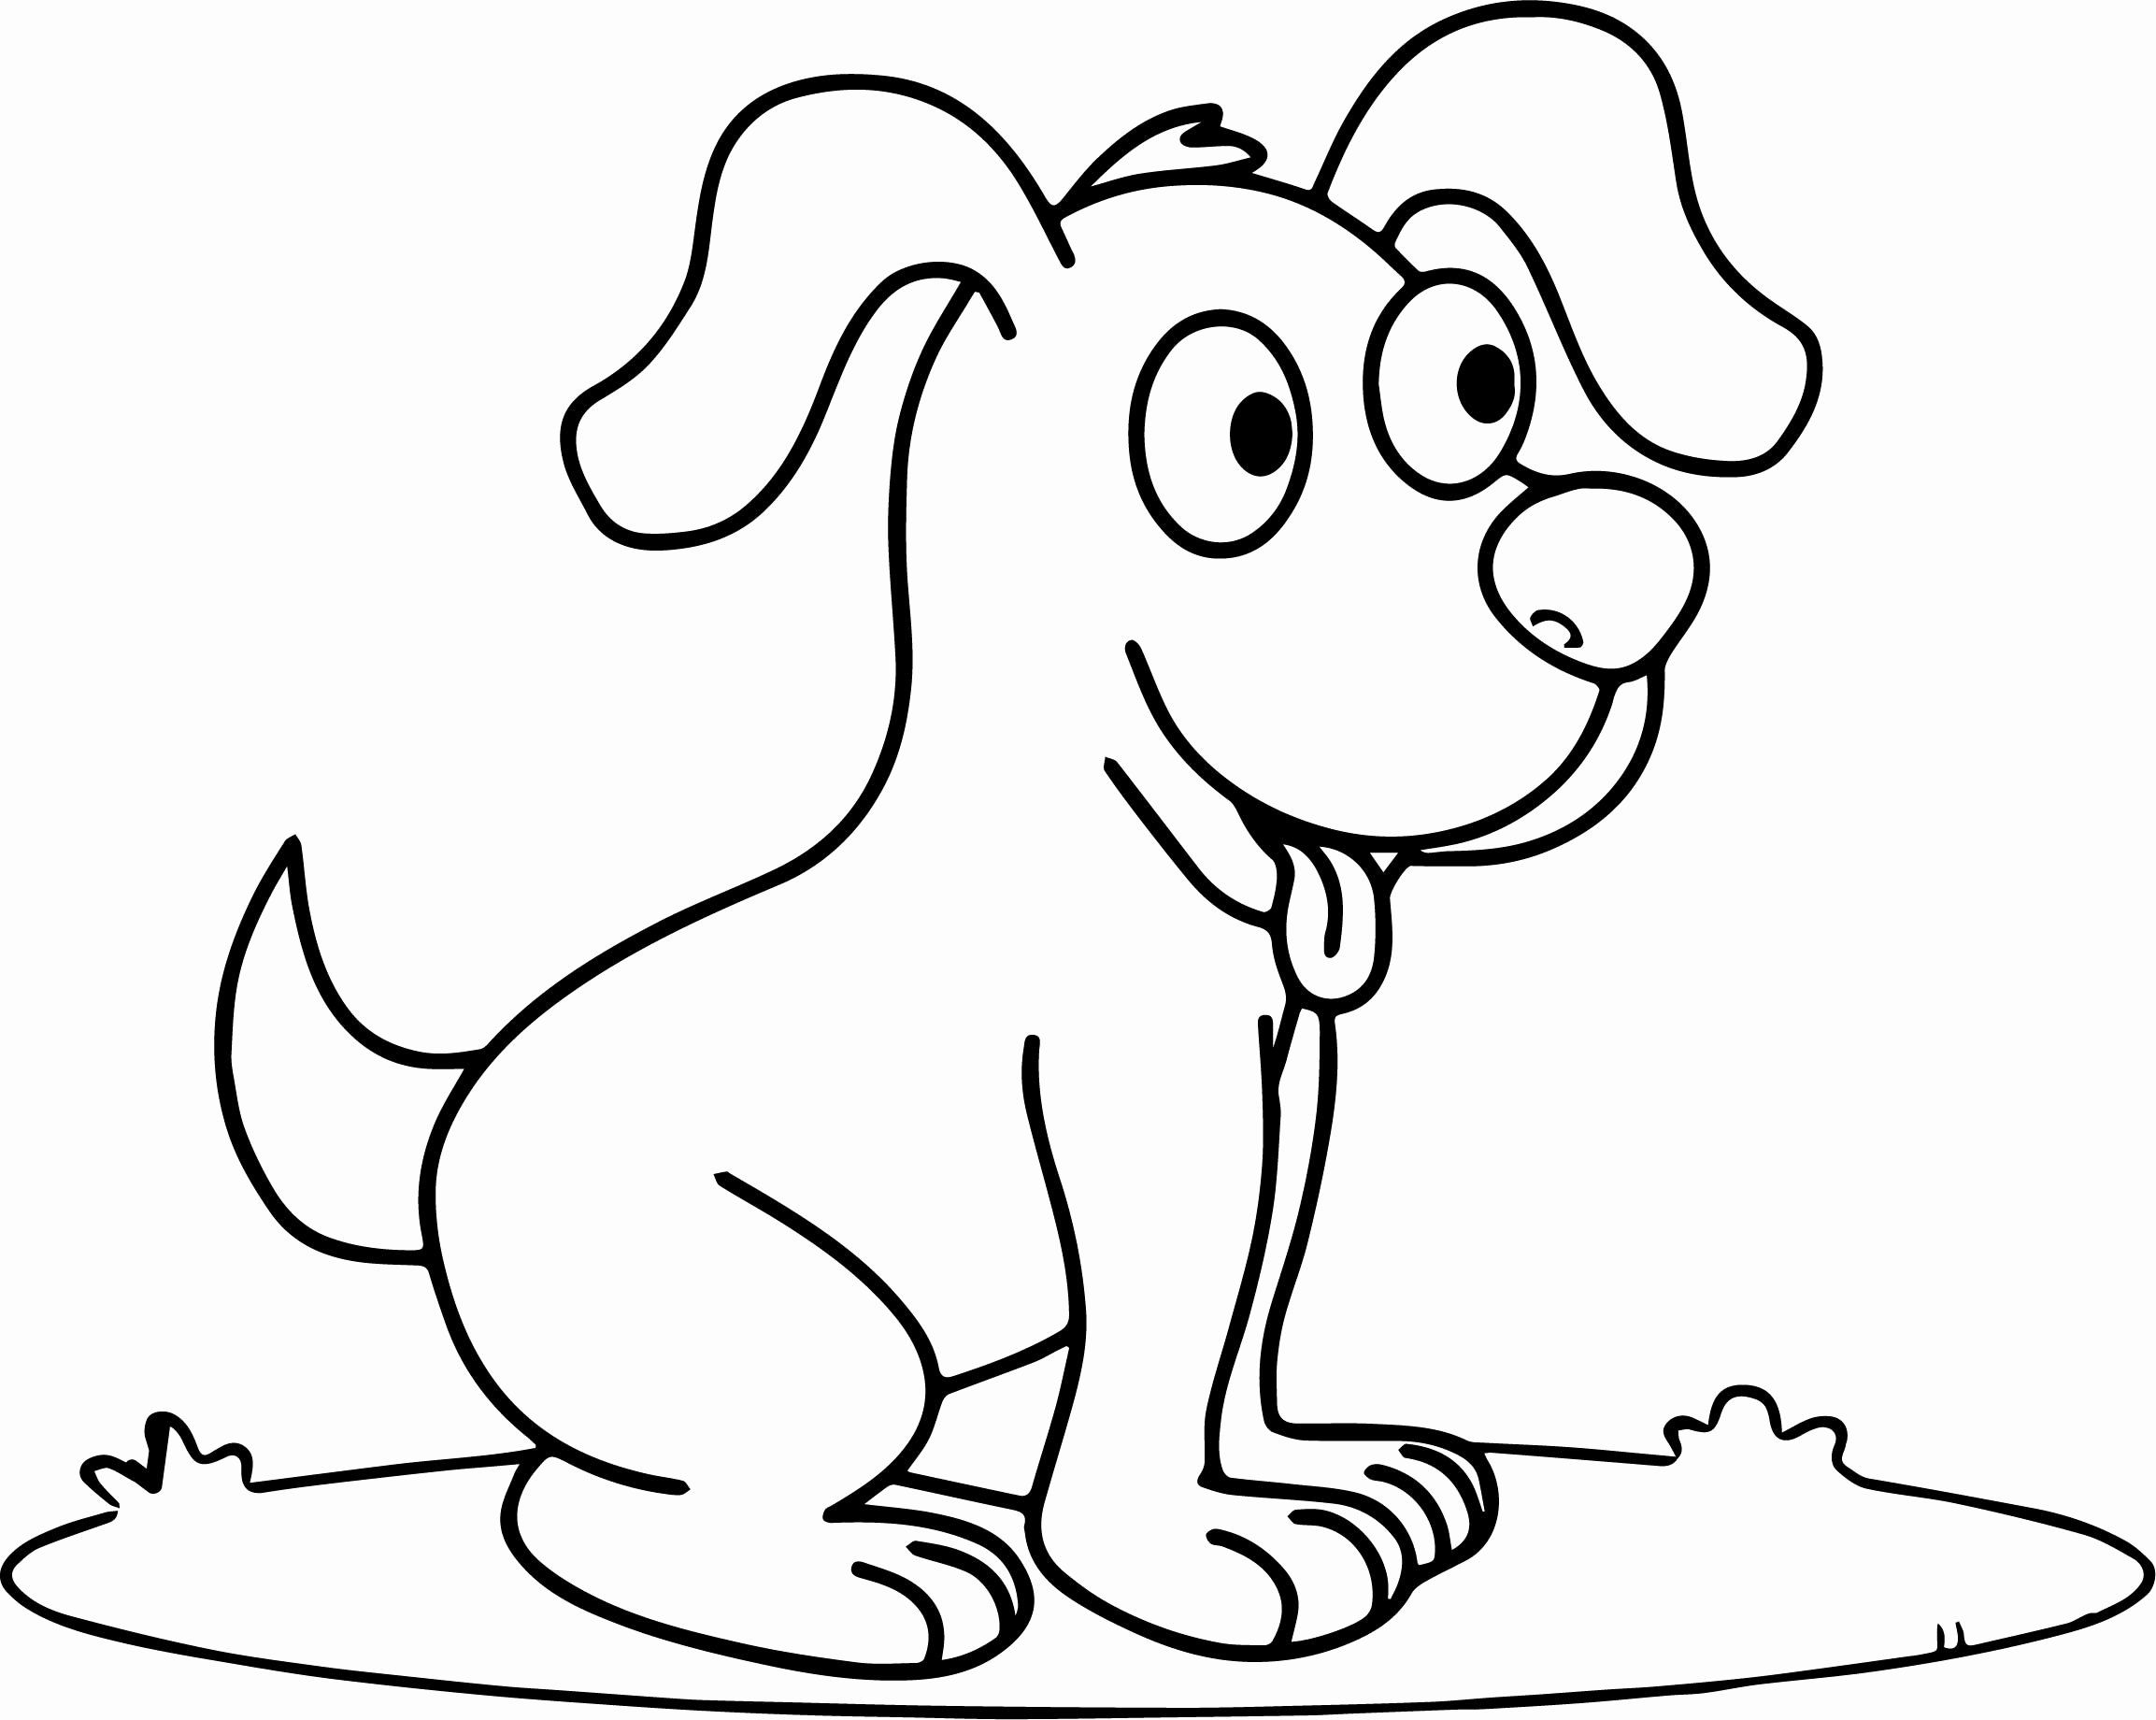 Cartoon Dog Coloring Page Inspirational Cartoons Dogs Clipartsco Sketch Coloring Page In 2020 Puppy Coloring Pages Dog Coloring Page Elephant Coloring Page